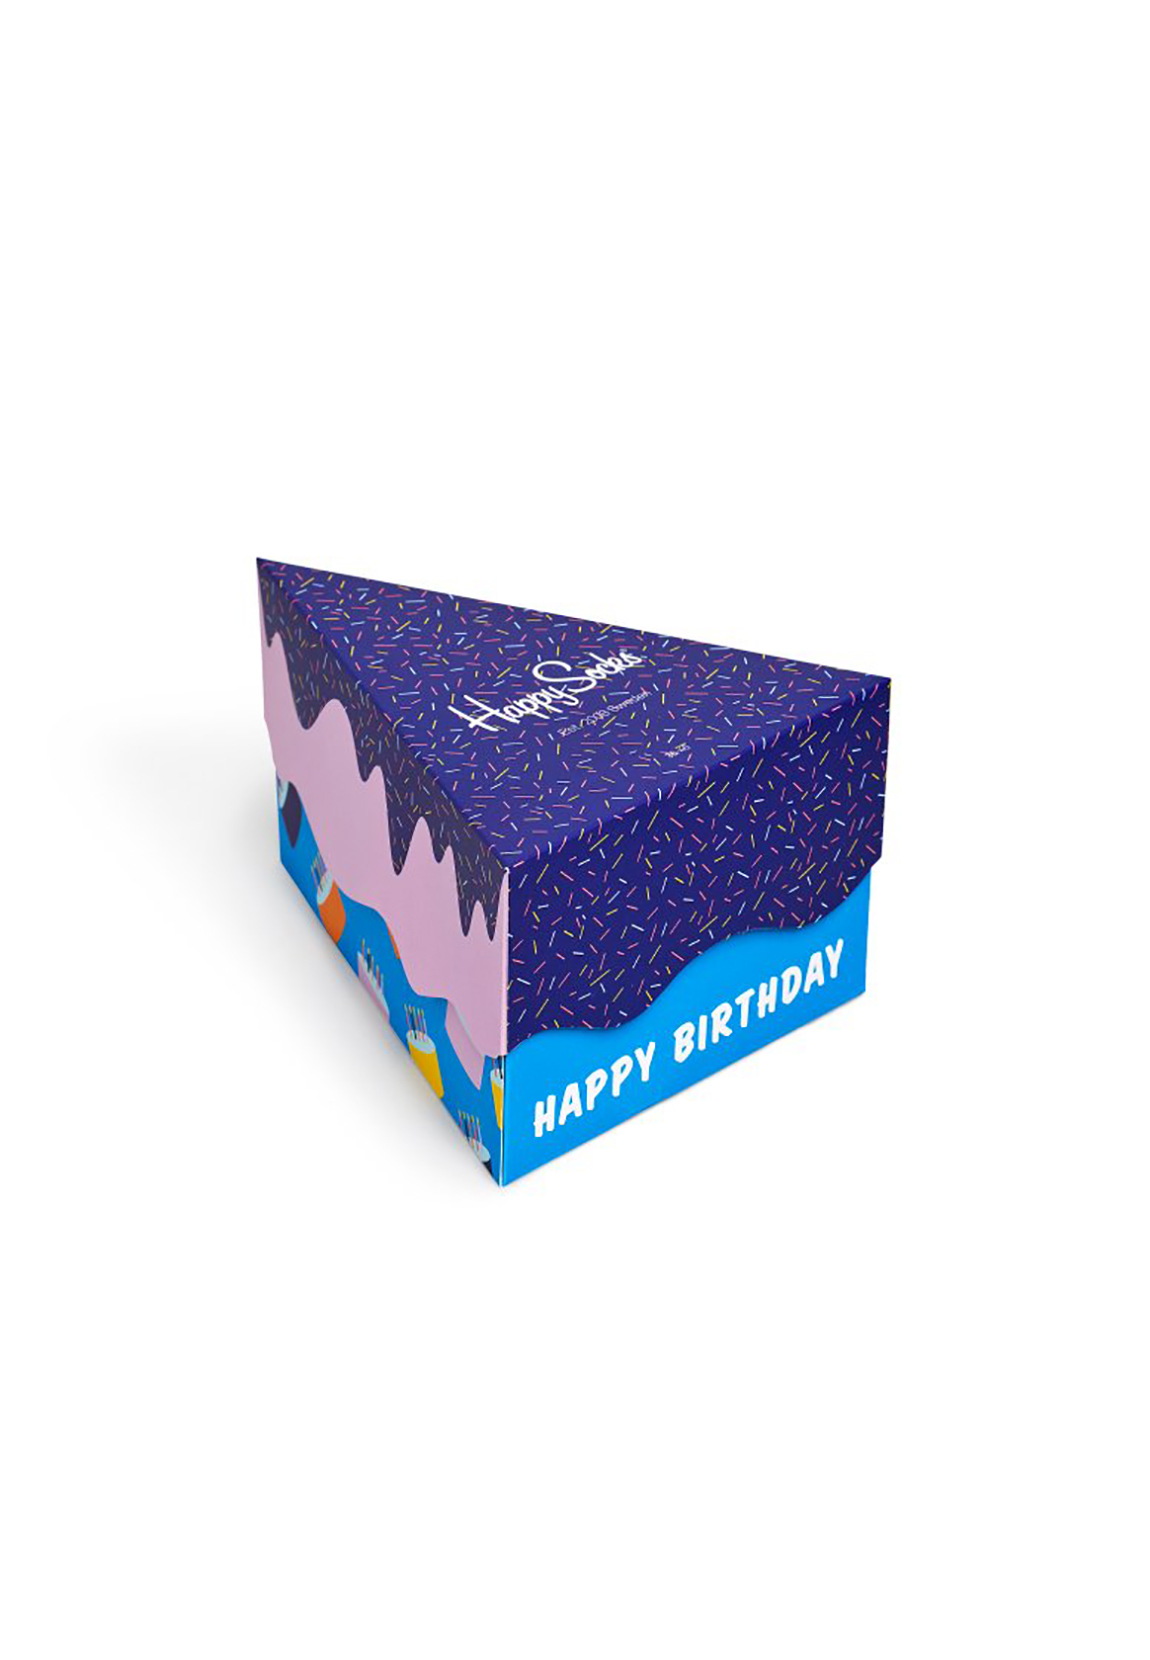 Happy Socks Geschenkbox BIRTHDAY GIFT BOX XBDA08 6001 Blau